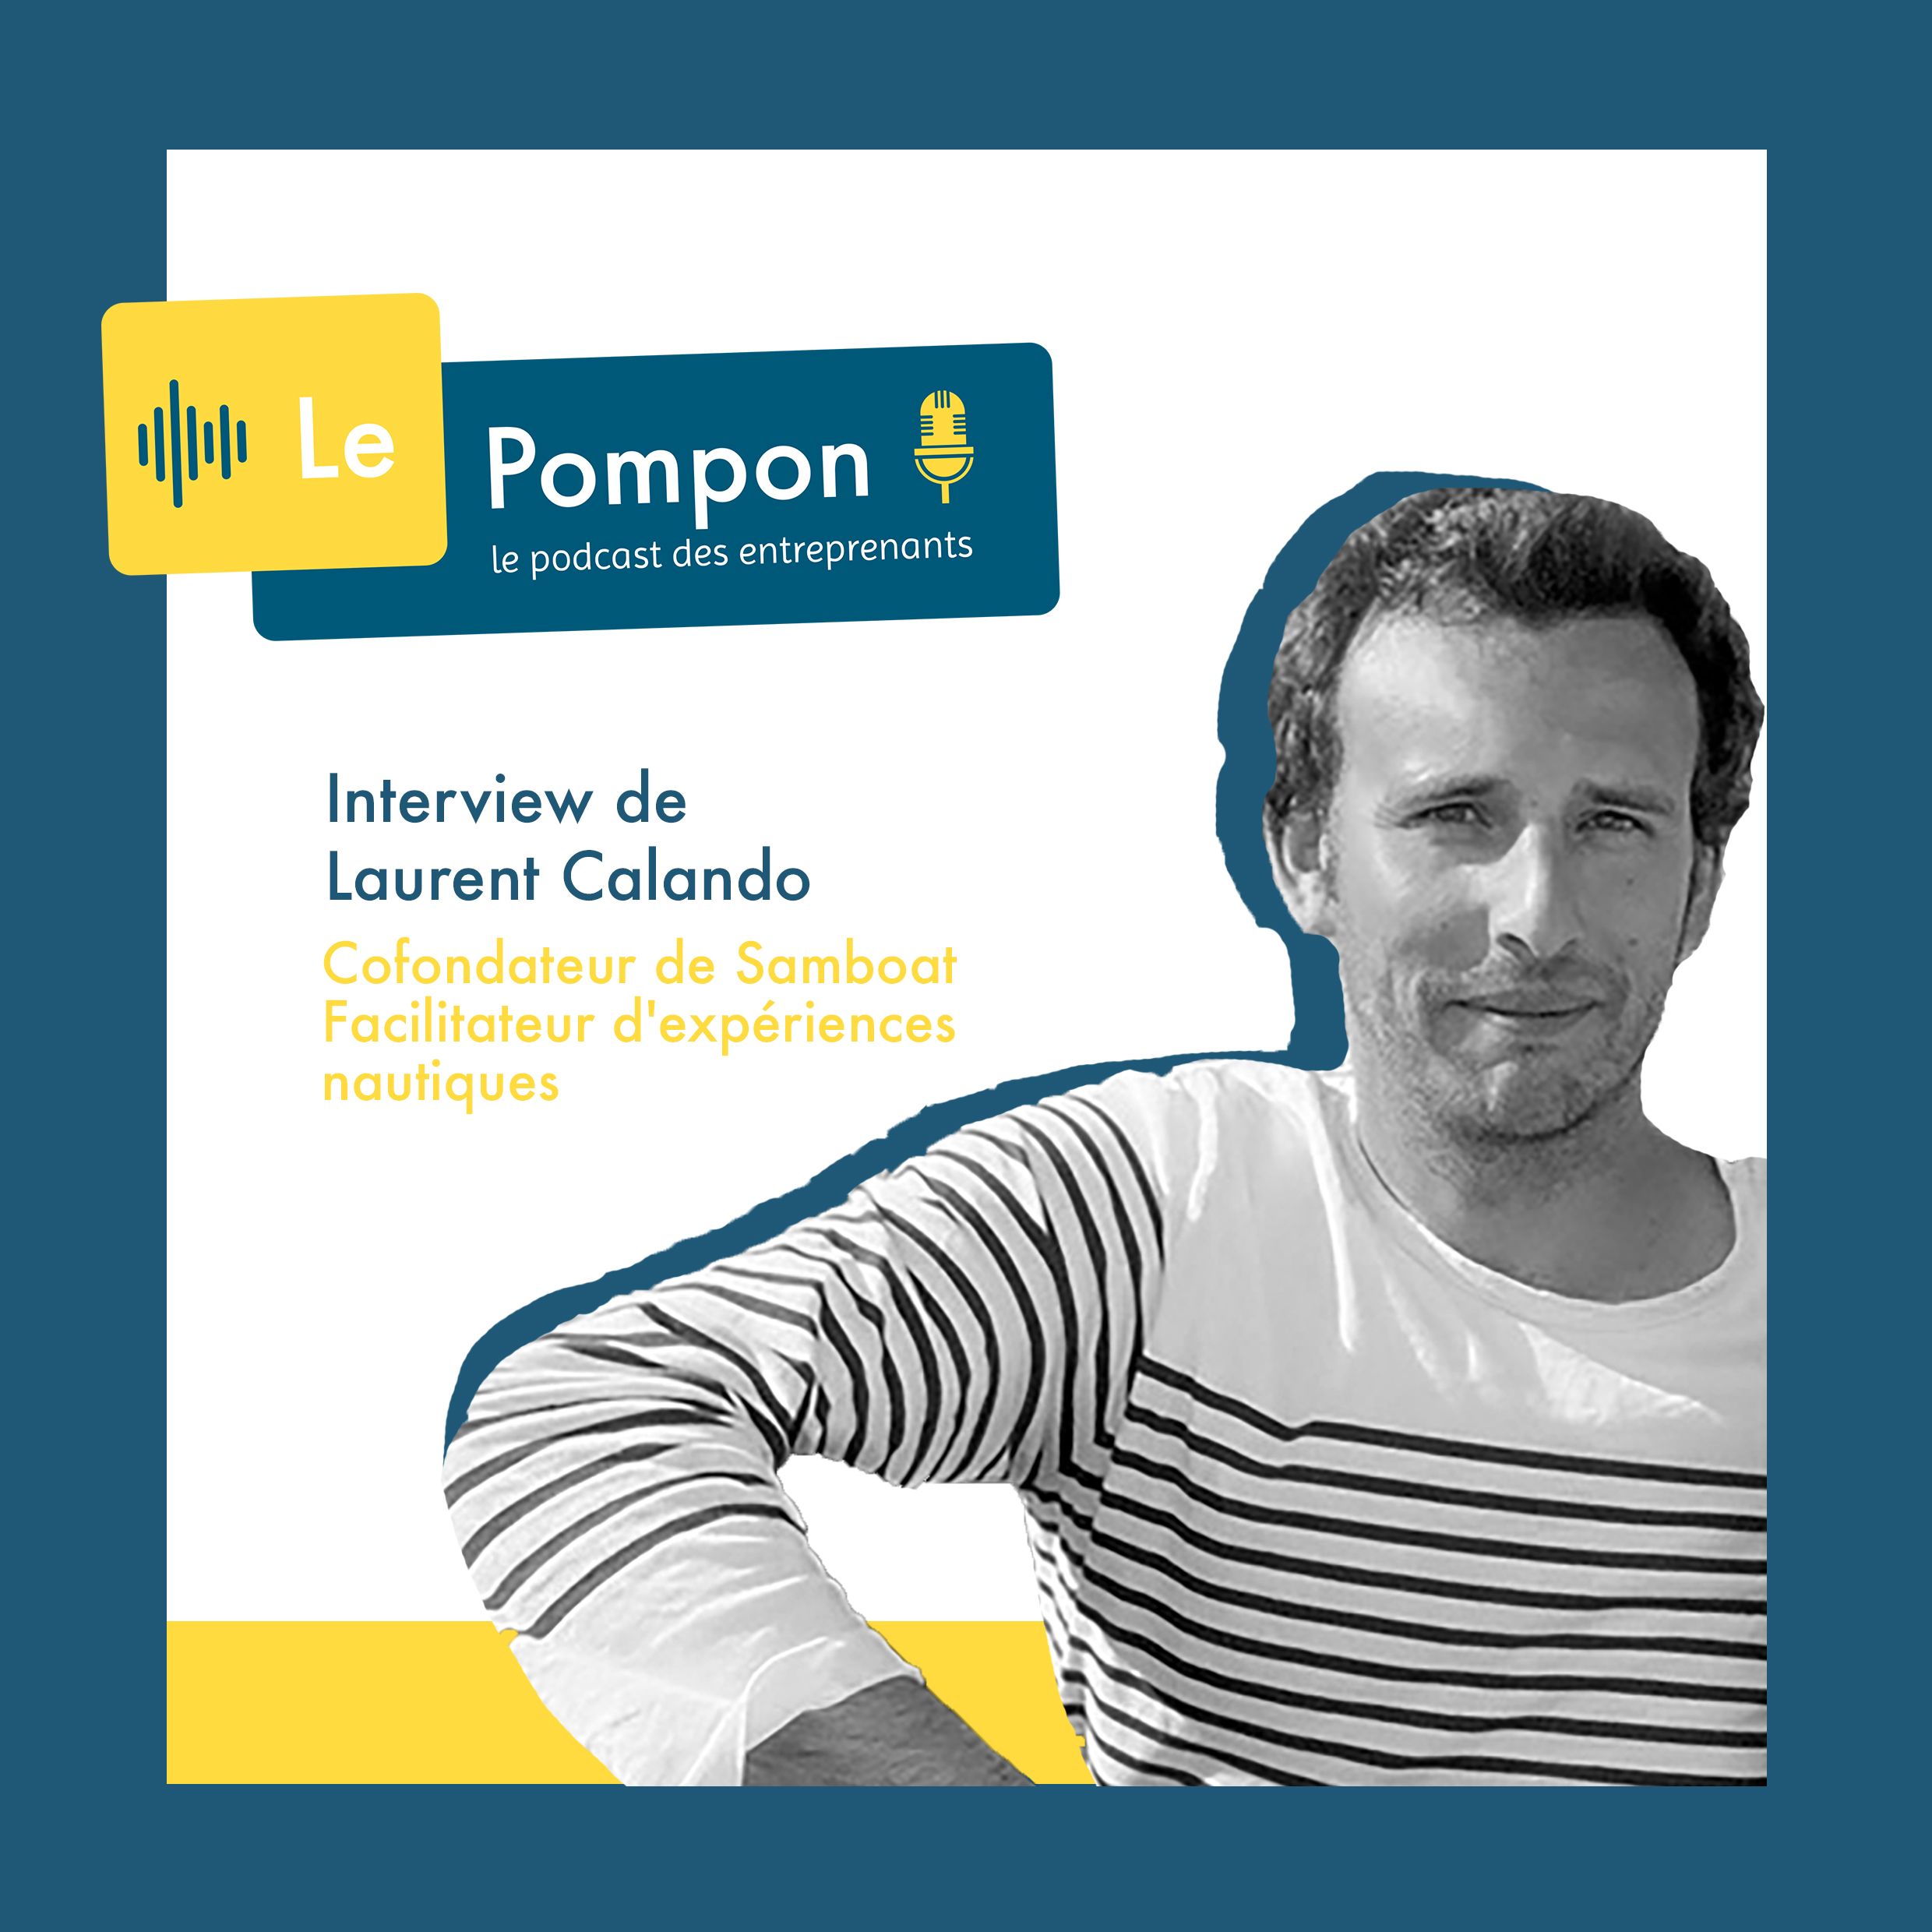 Illustration de l'épisode 19 du Podcast Le Pompon : Laurent Calando, CoFondateur de Samboat